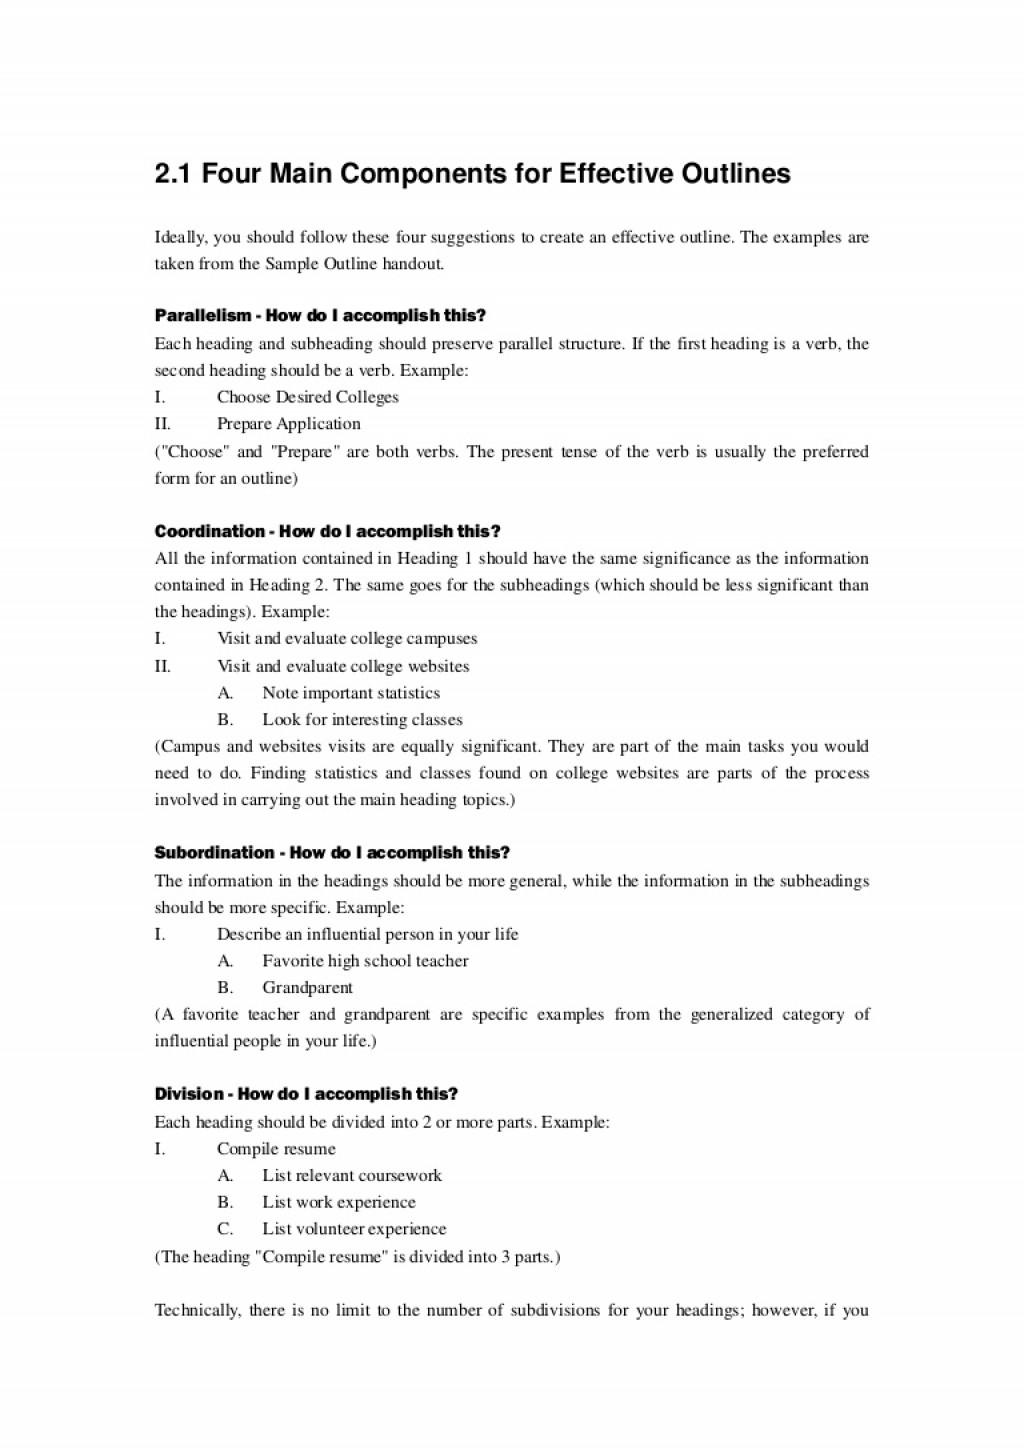 007 Thumbnail Essay Example How To Do An Outline Astounding For A Simple Mla Format Sample Large